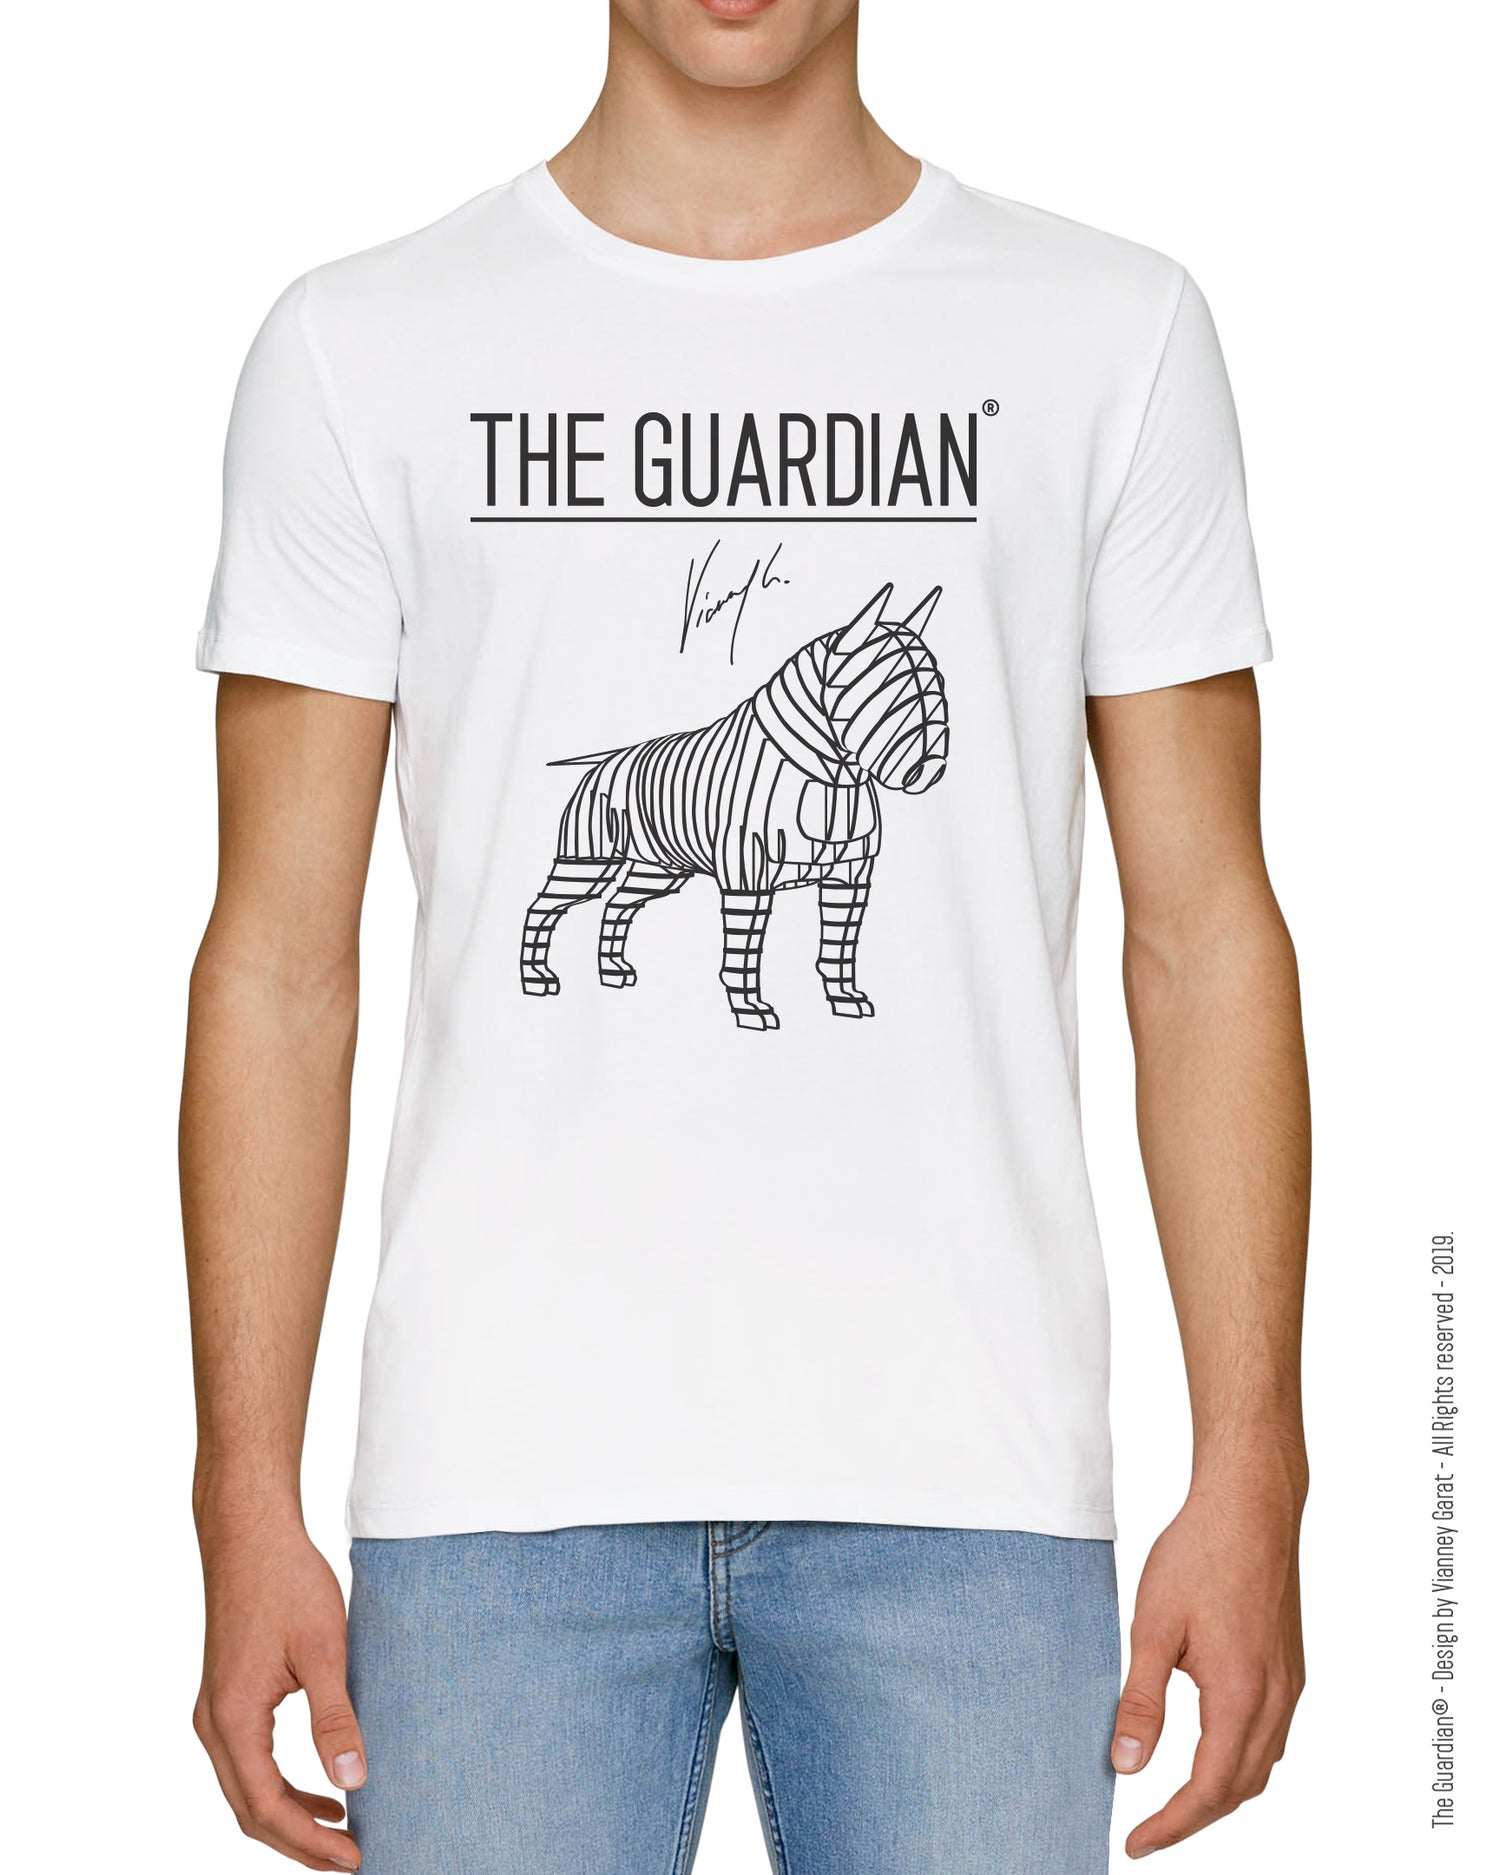 Image of T-SHIRT THE GUARDIAN® - ANGEL EDITION - Limited Edition